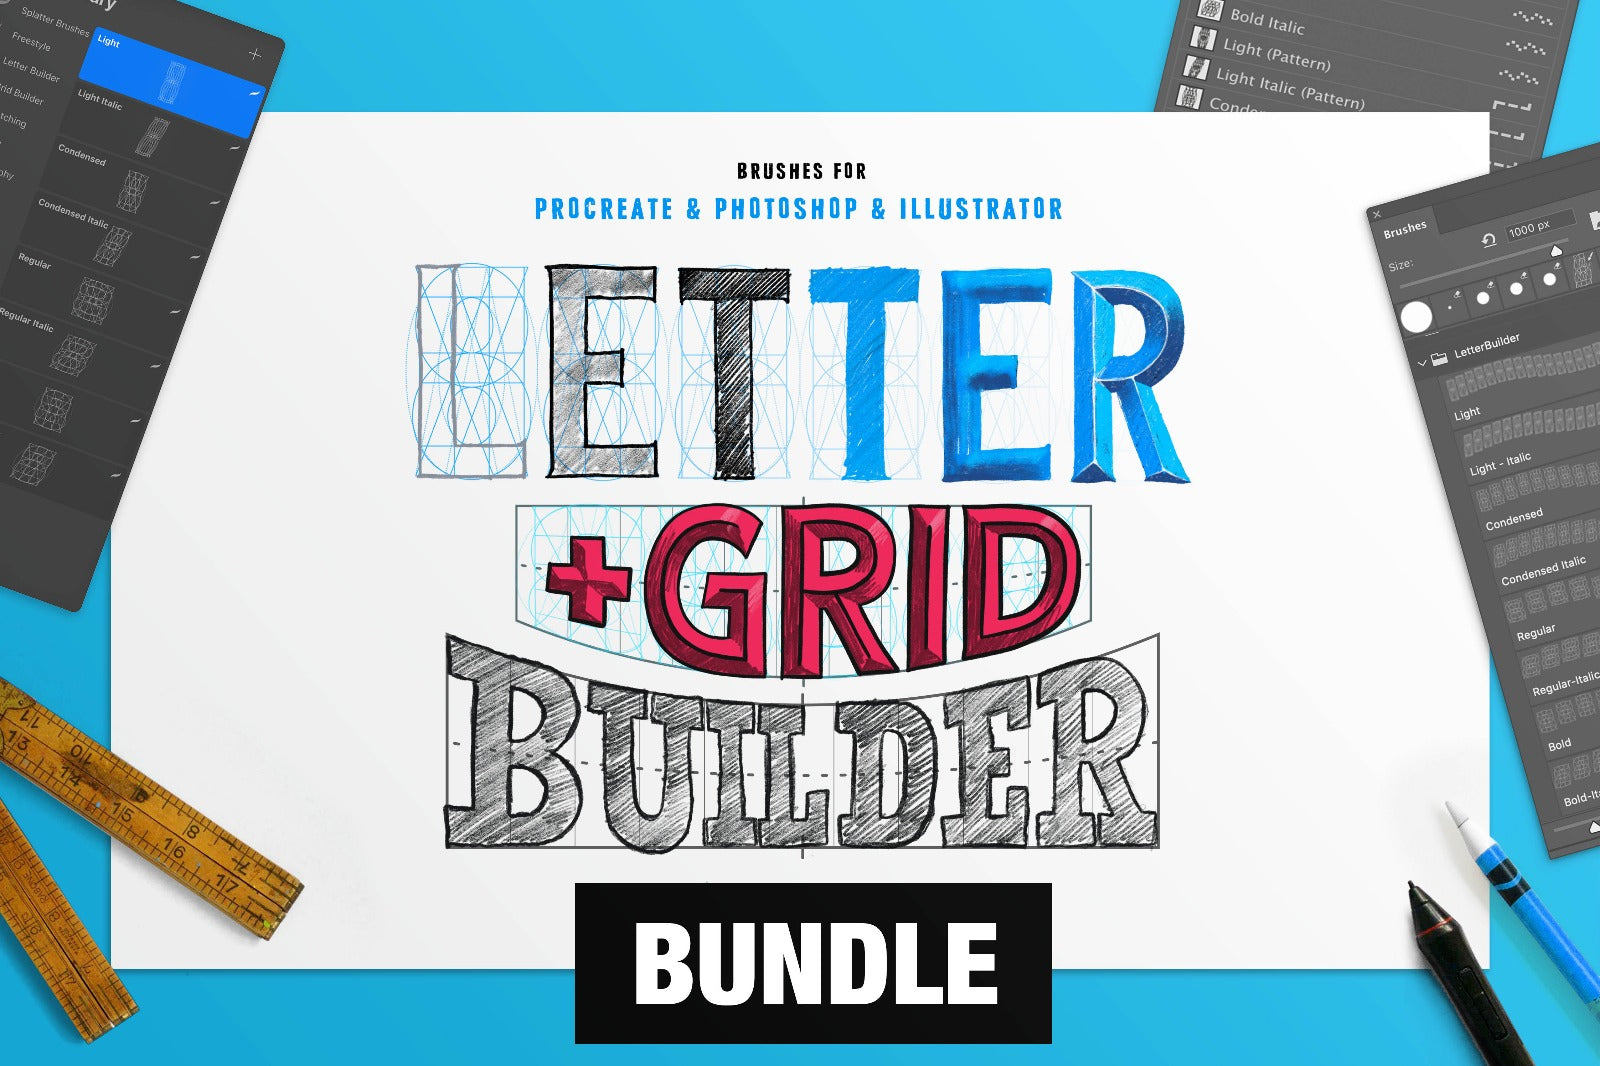 The Builder Bundle - Save 25%